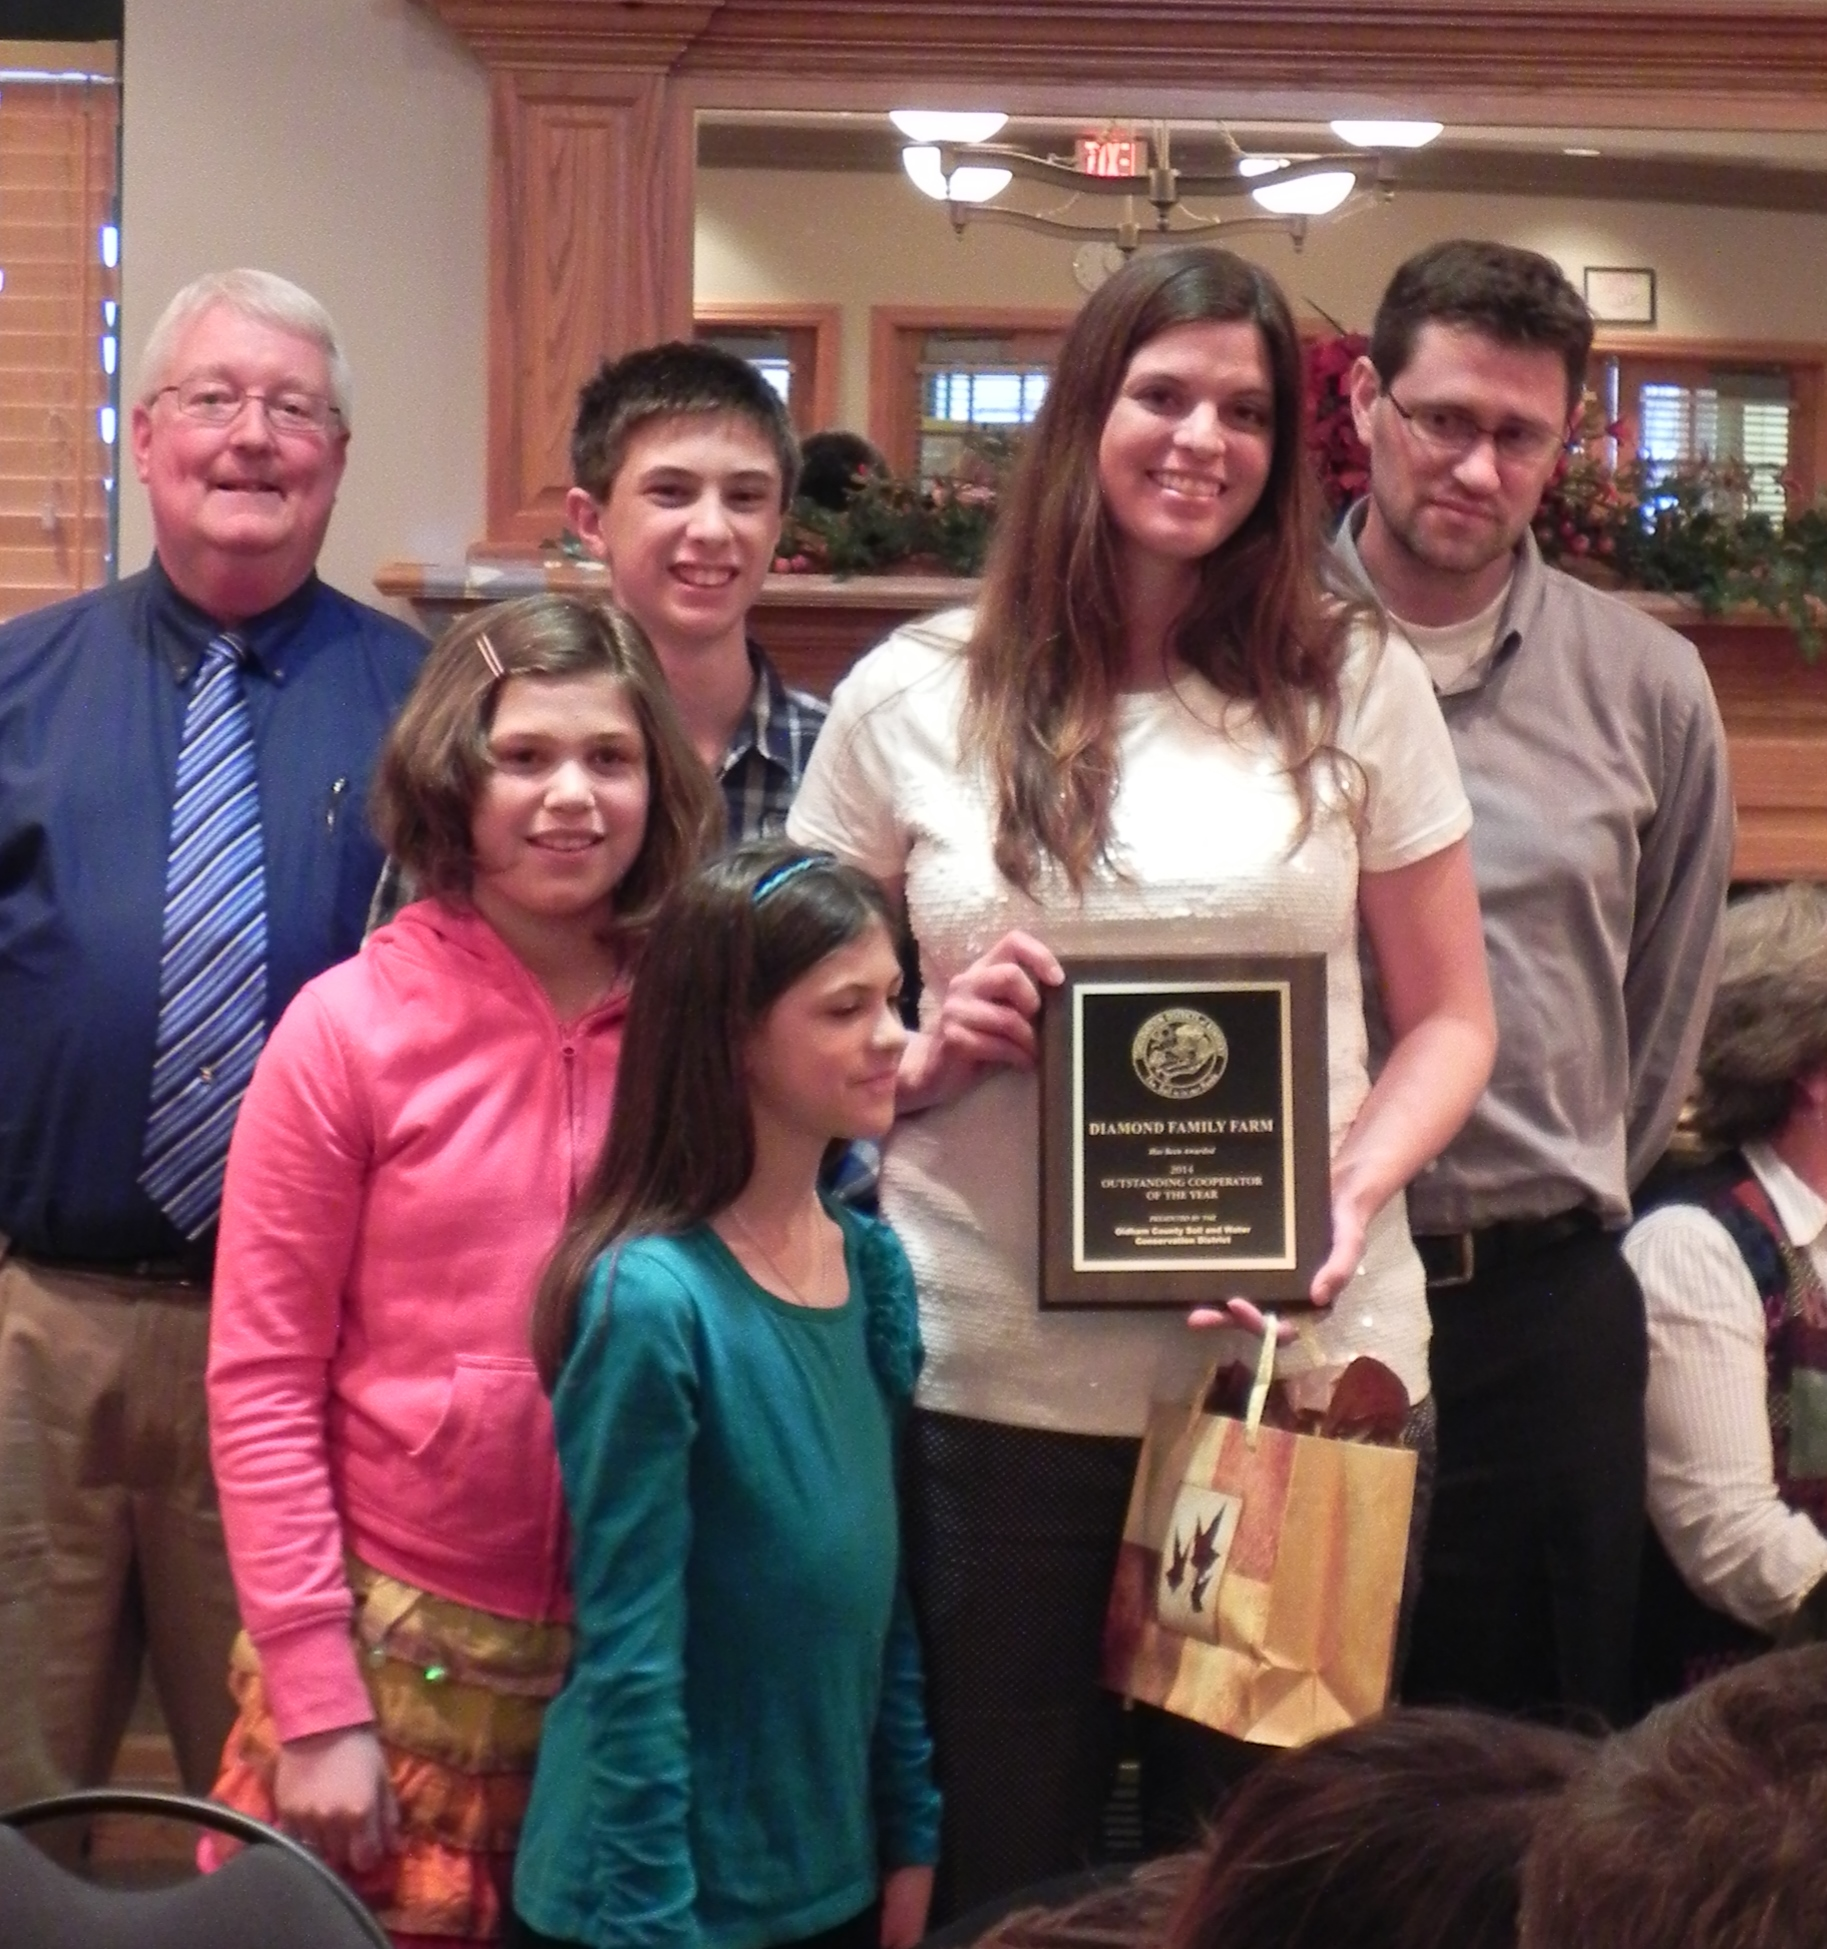 Diamond Family receives award